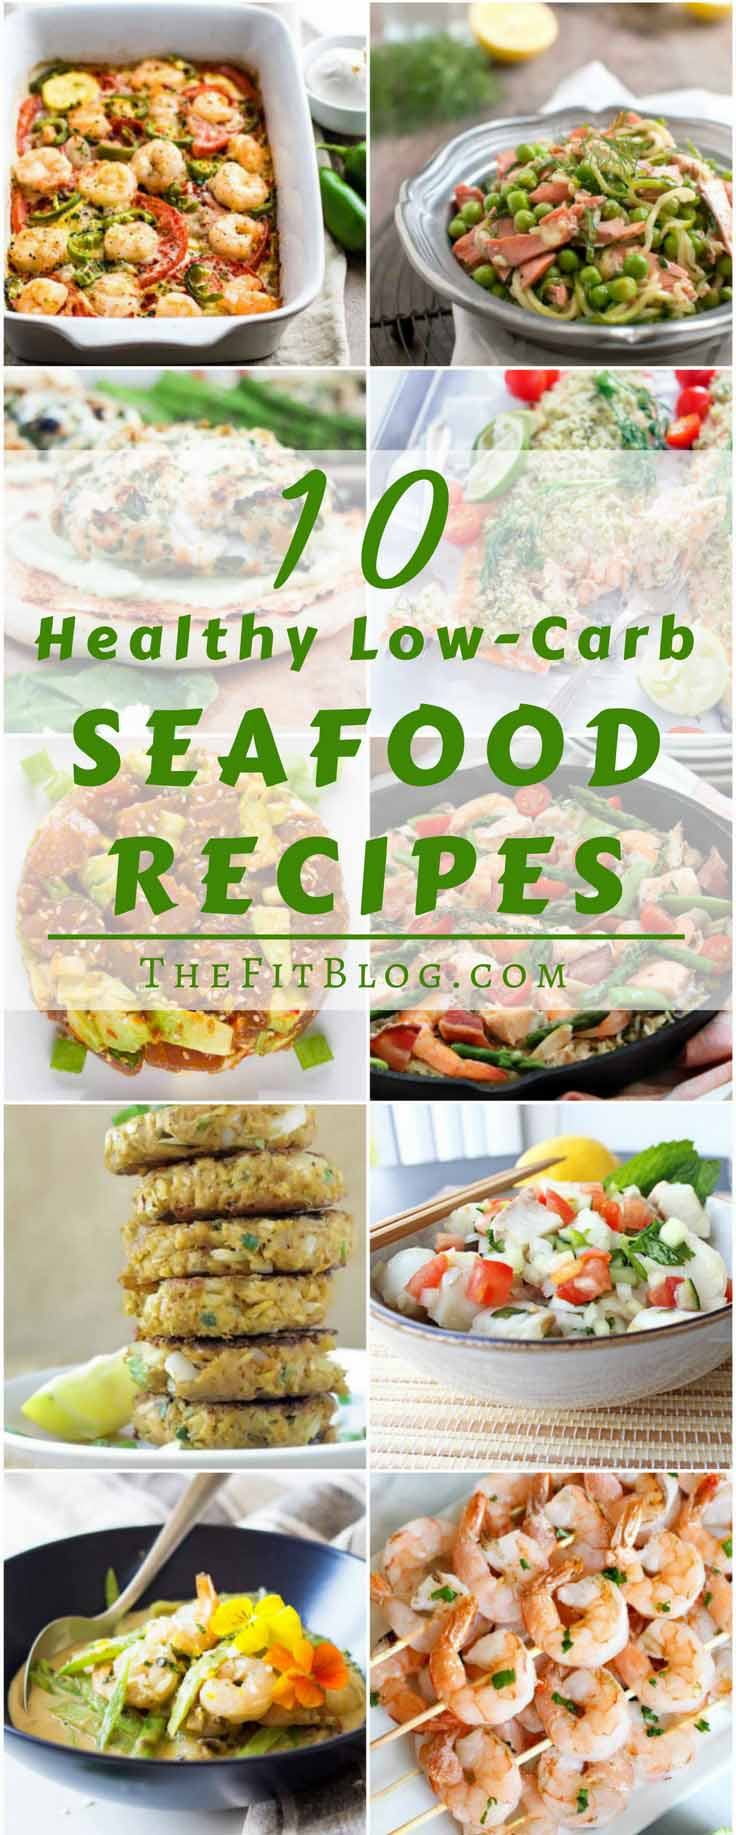 The most delicious and easy to cook low-carb seafood recipes – A mic of quick weeknight recipes, grilling recipes, and a few more fancy (but still easy) recipes for when you have guests over. #seafood #fishrecipes #shrimp #seafoodrecipes #healthyeating #healthyrecipes #diabetesdiet #diabetesrecipe #diabeticdiet #diabeticfood #diabeticrecipe #diabeticfriendly #lowcarb #lowcarbdiet #lowcarbrecipes